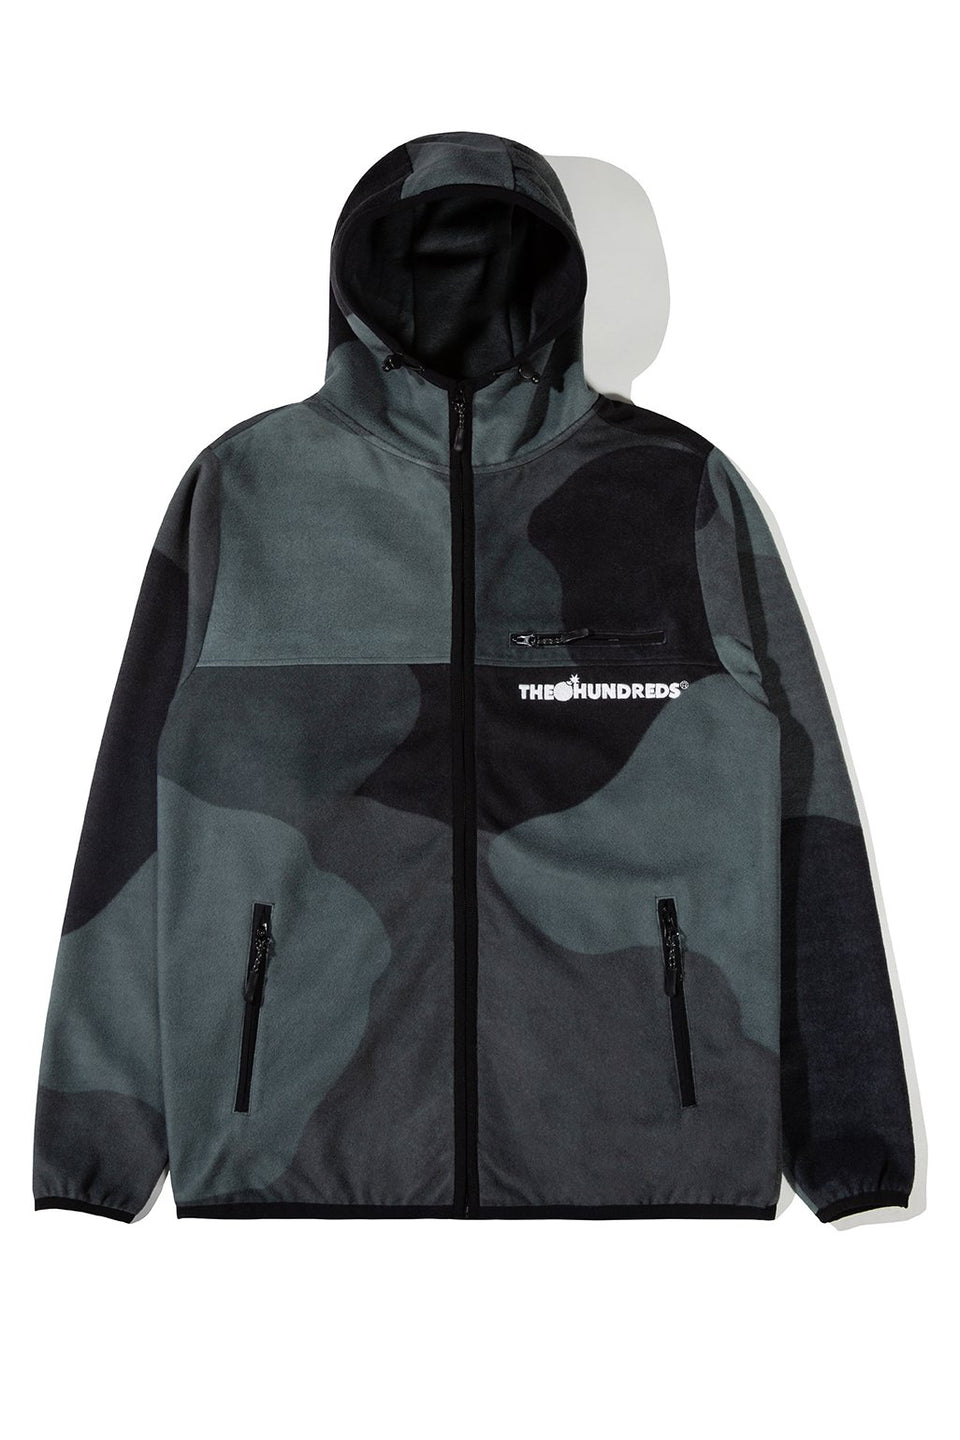 The Hundreds Hideaway Zip-Up Hoodie TOPS Black